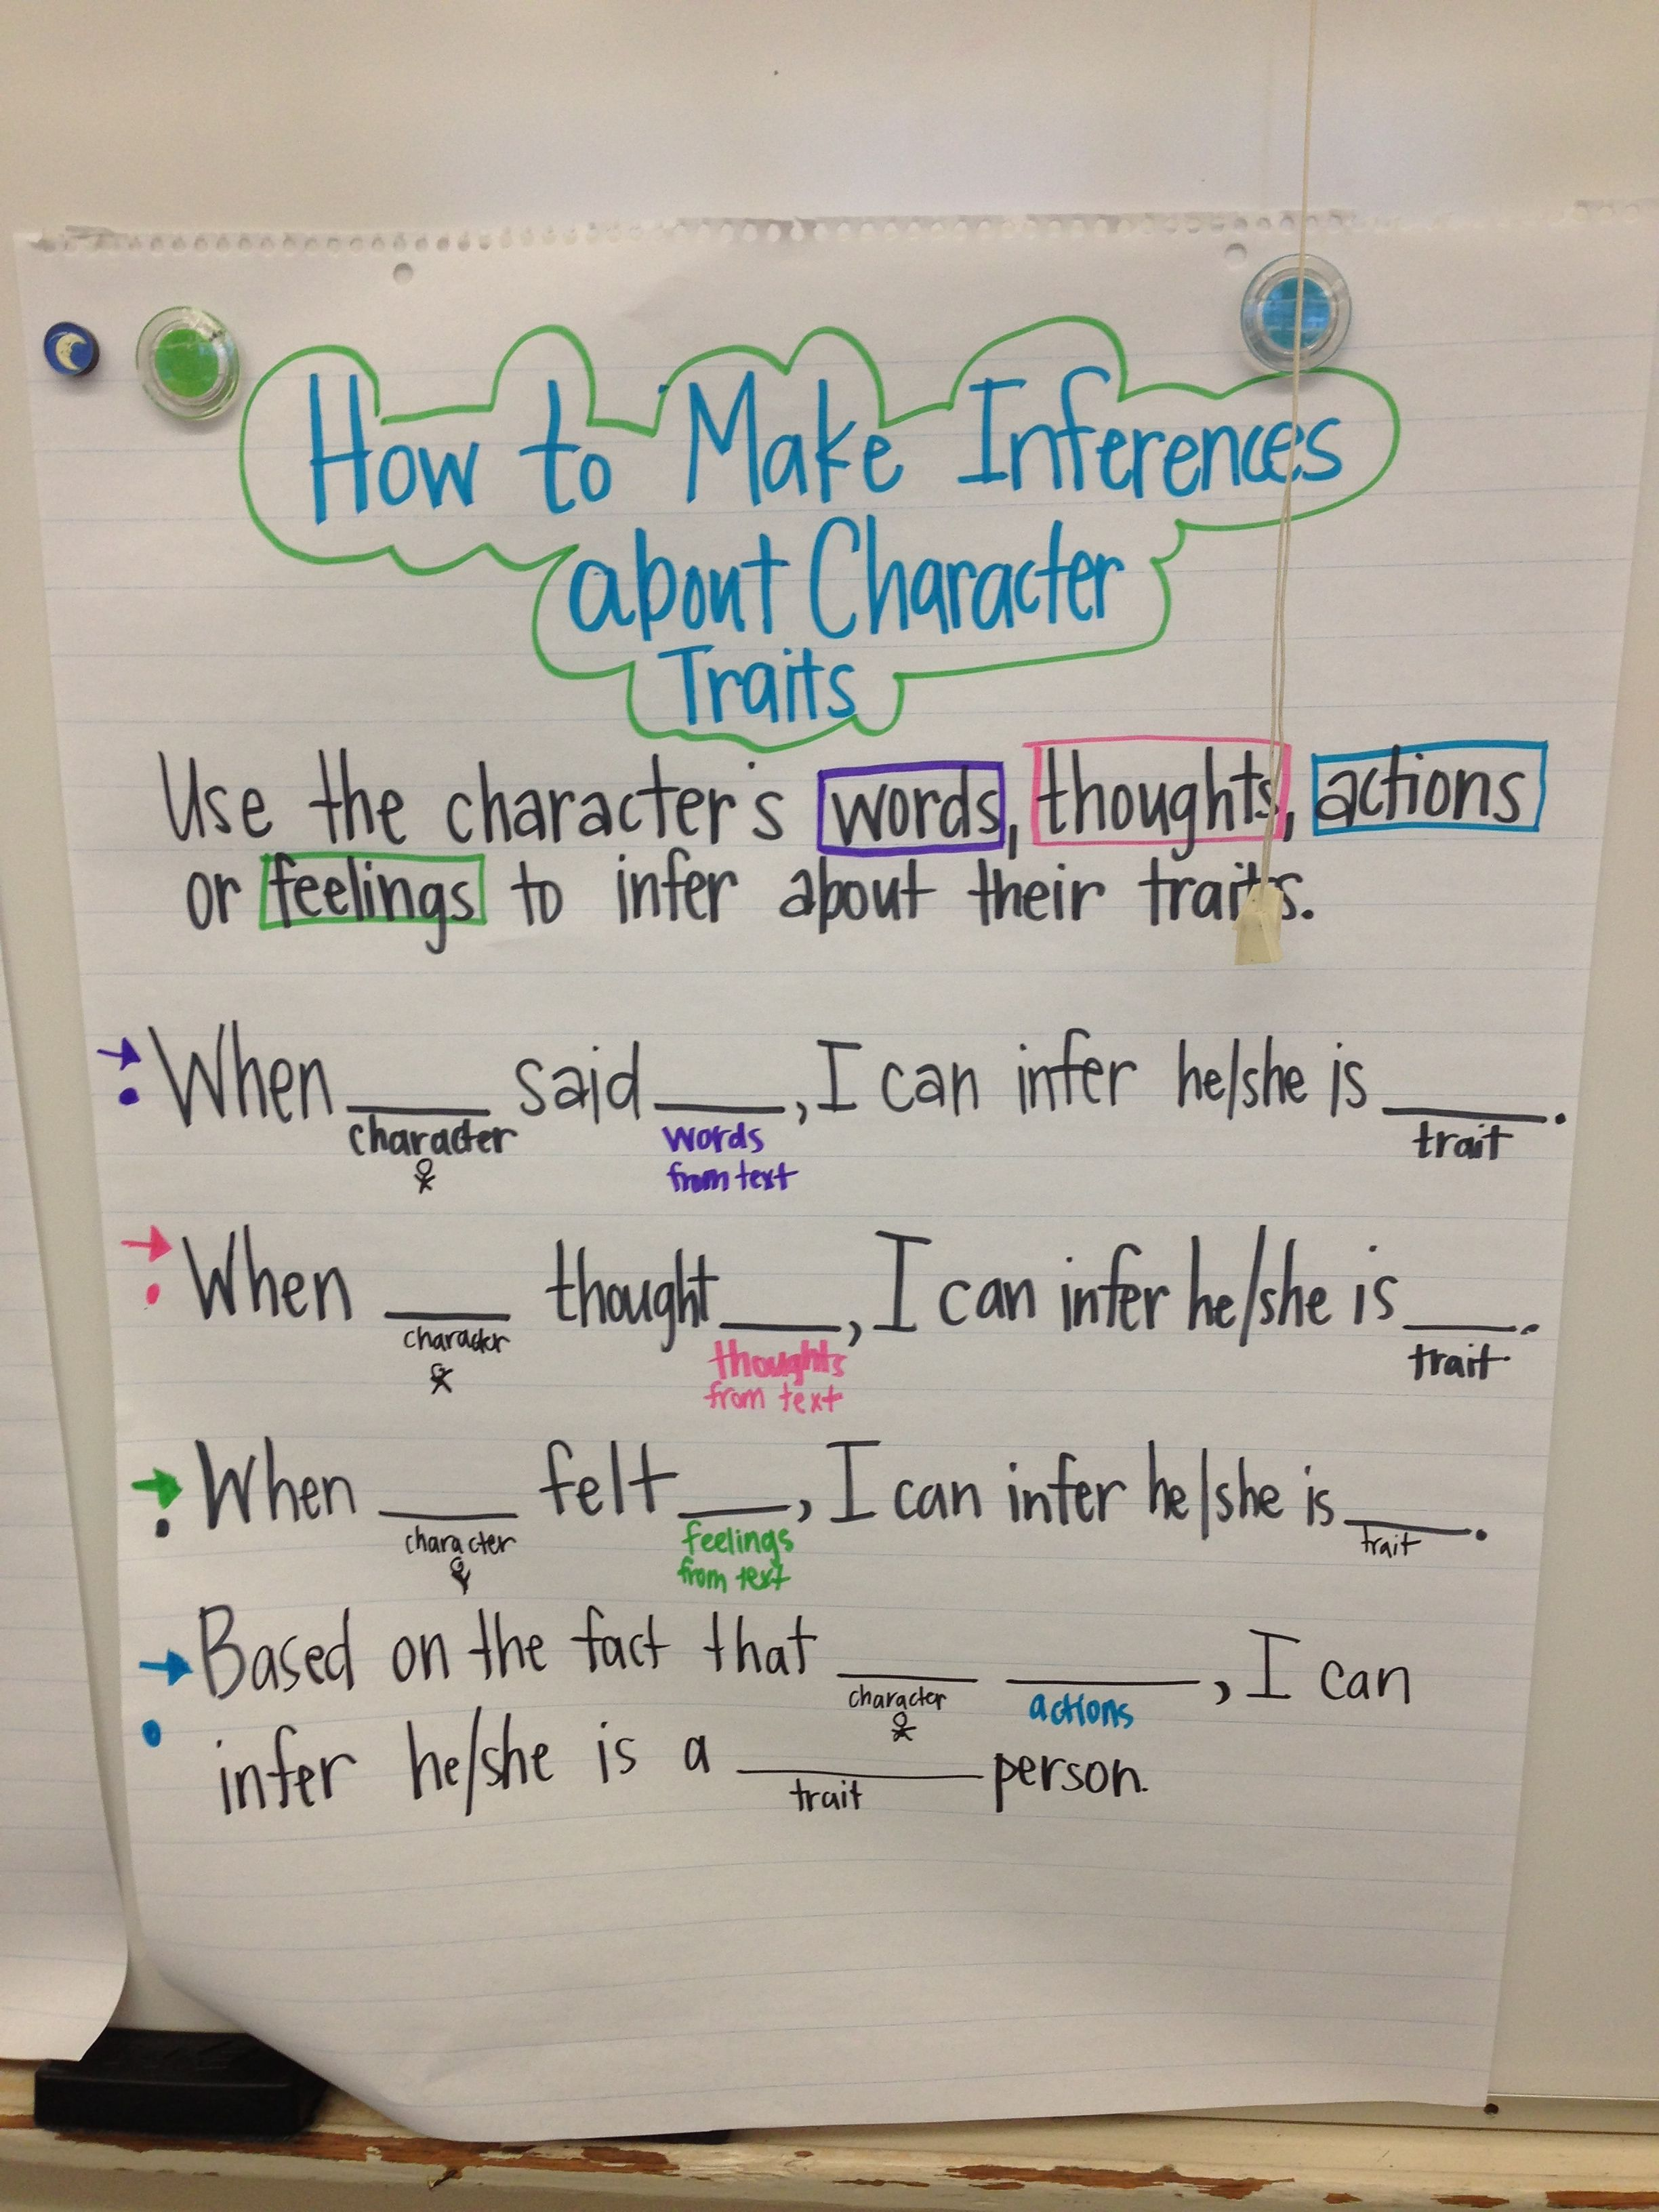 Sentence Frames For Ell For Making Inferences About